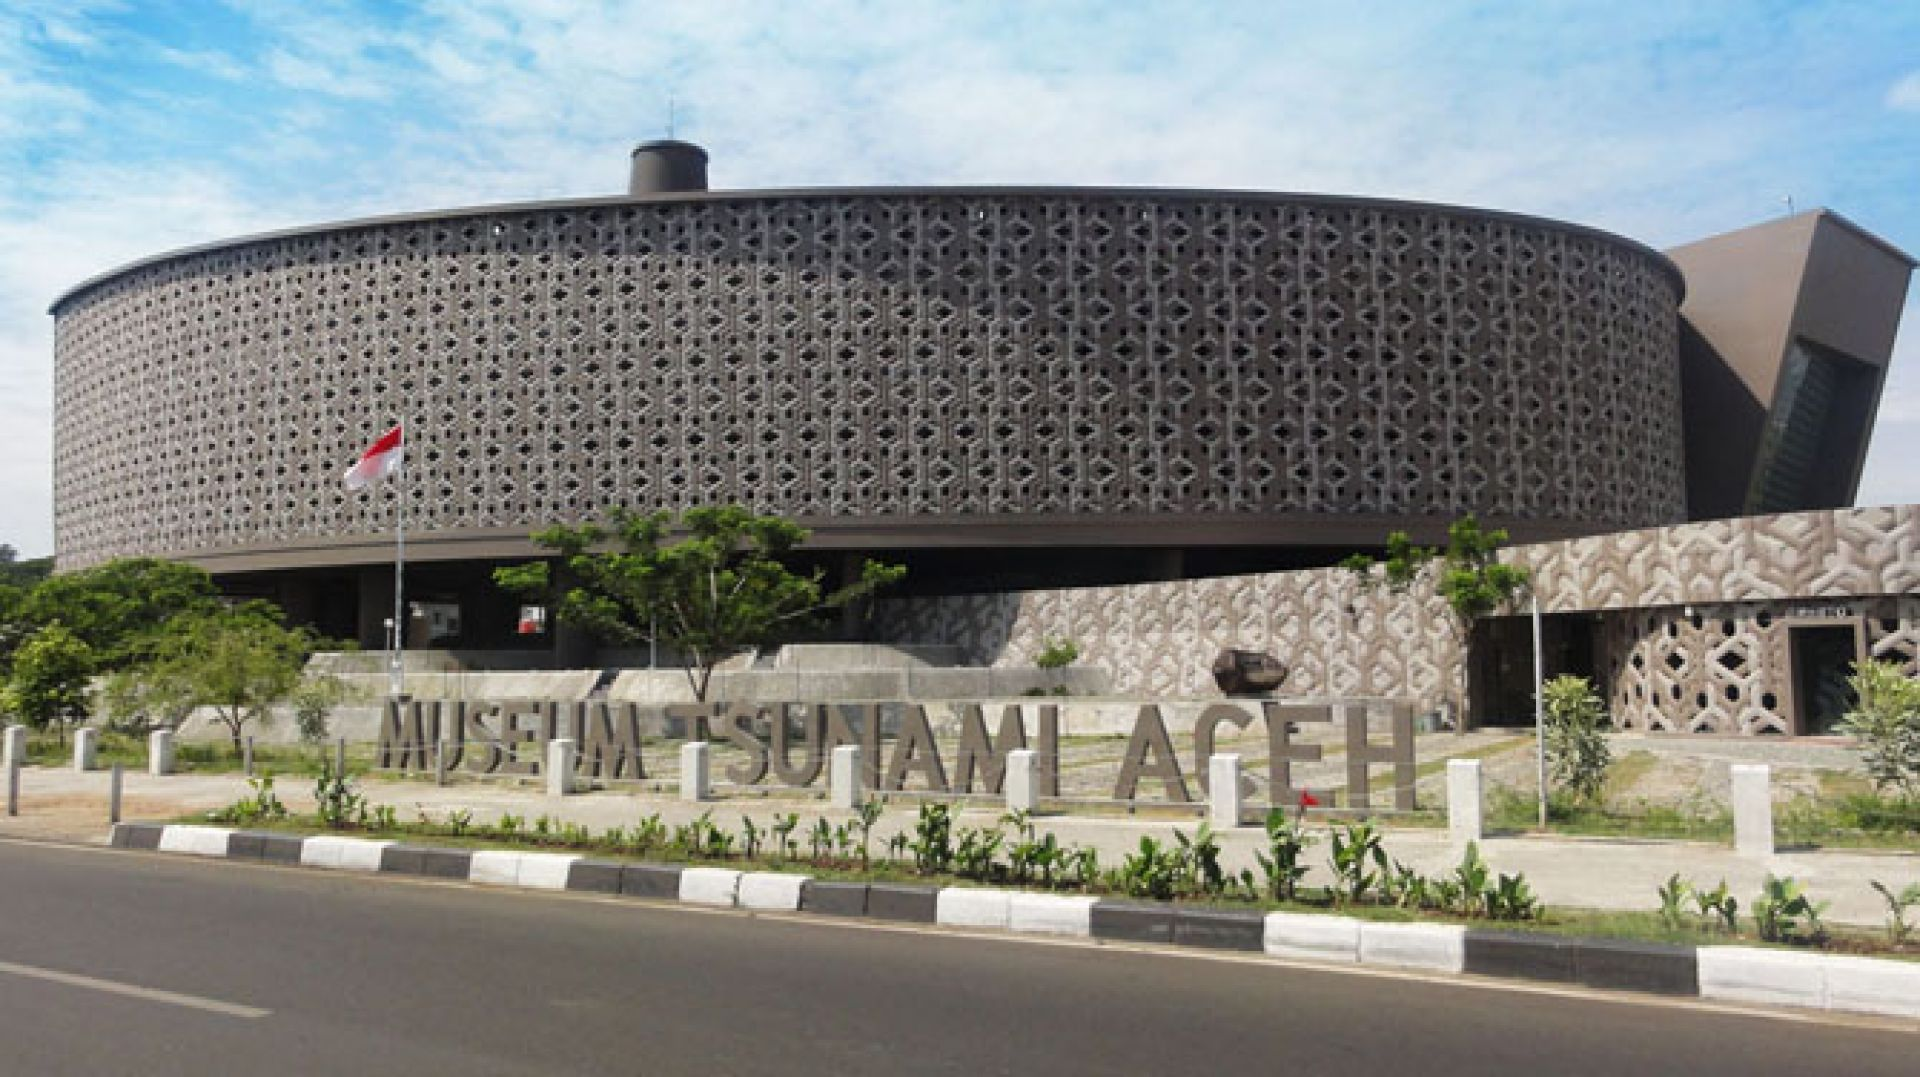 The Aceh Tsunami Museum is a symbolic monument